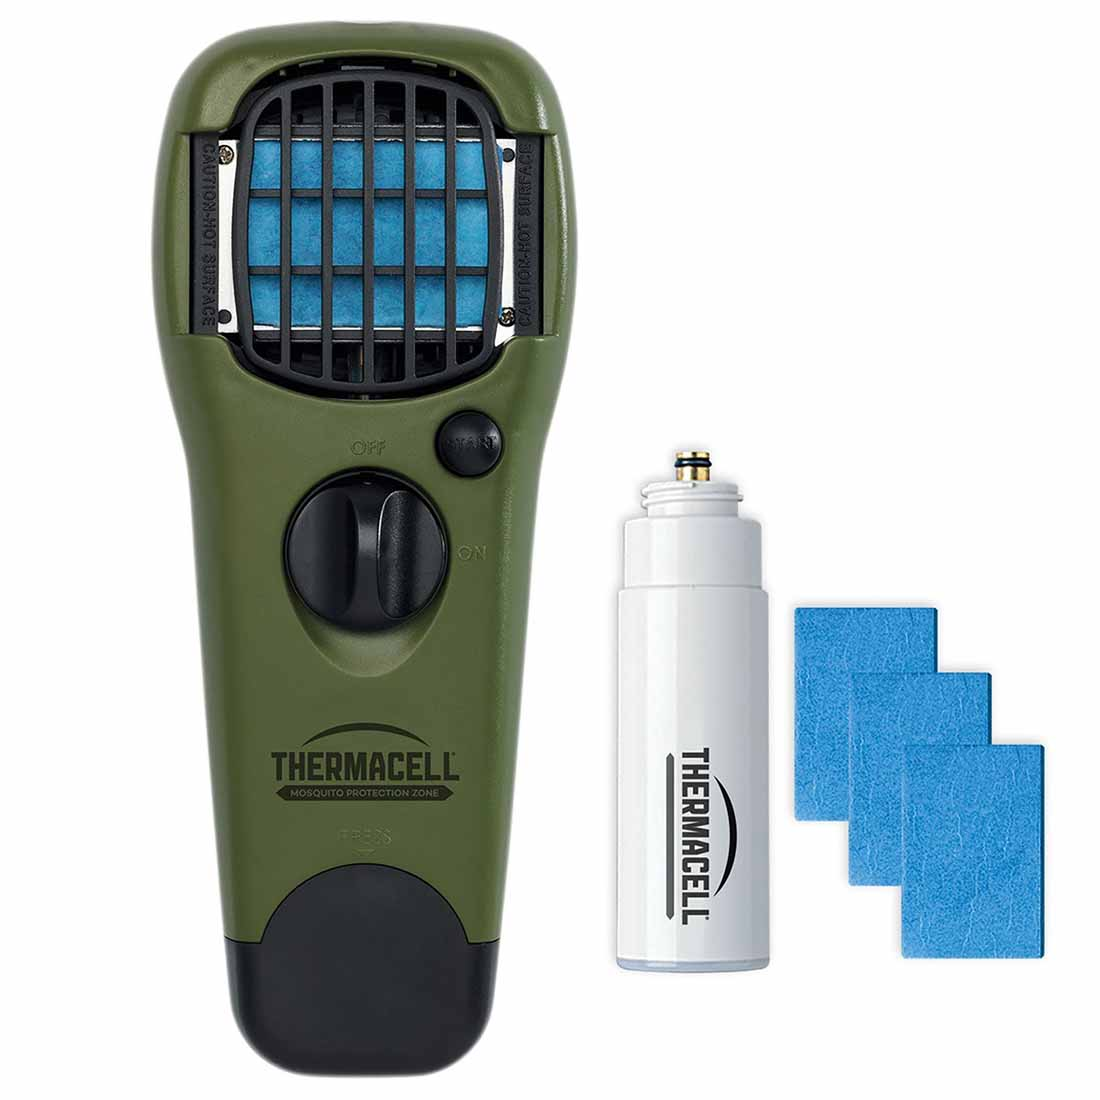 Thermacell Portable Mosquito Repeller, Olive_2.jpg